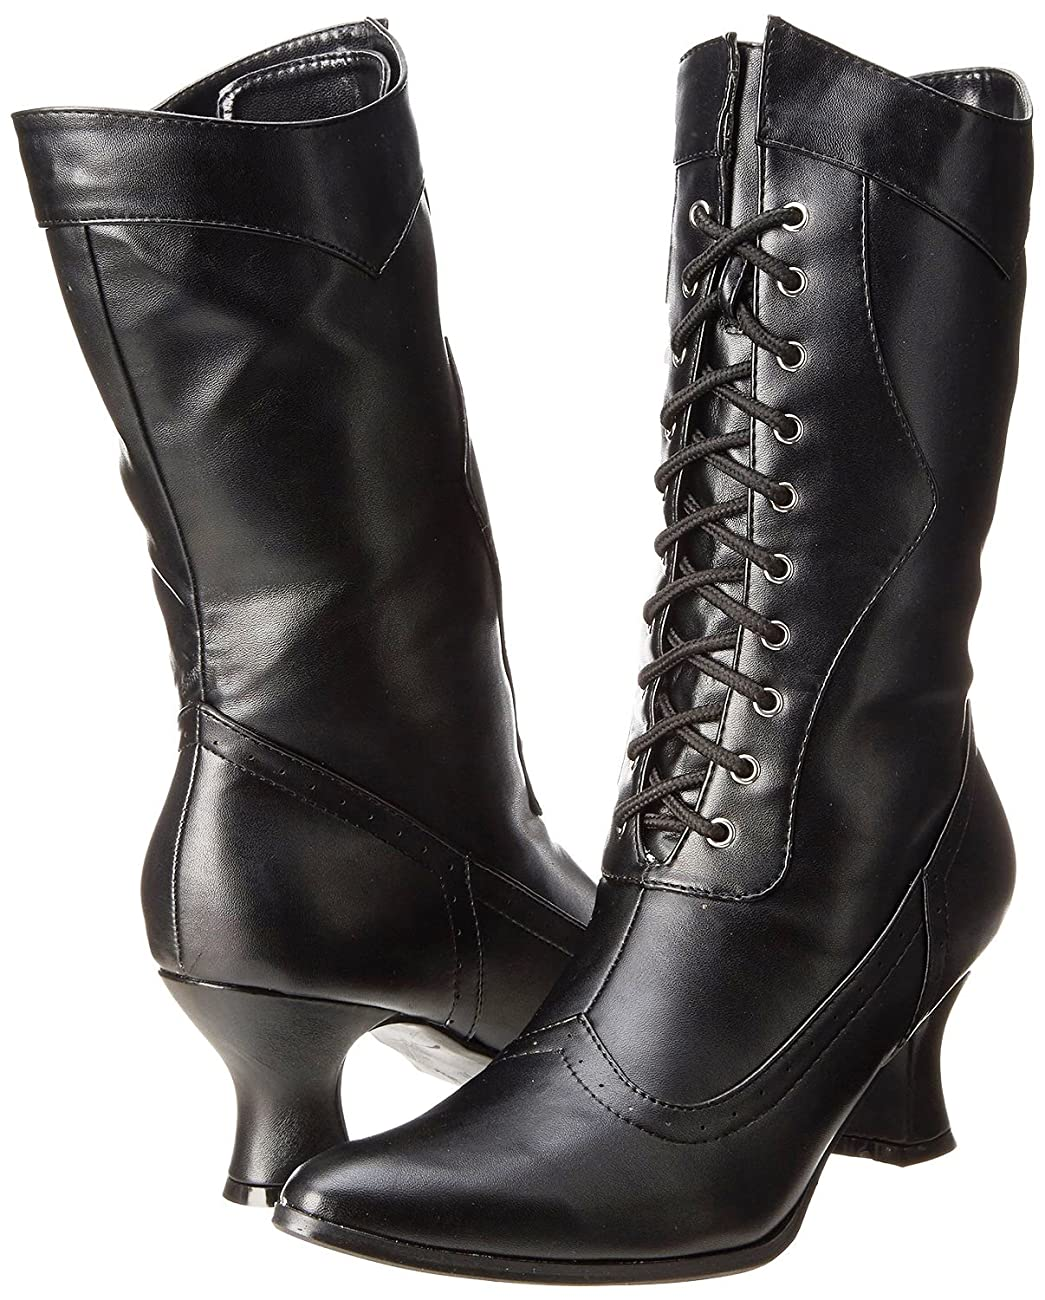 Ellie Shoes Women's Amelia Victorian Boots Black Polyurethane Vintage Ankle Boot with Zipper 6